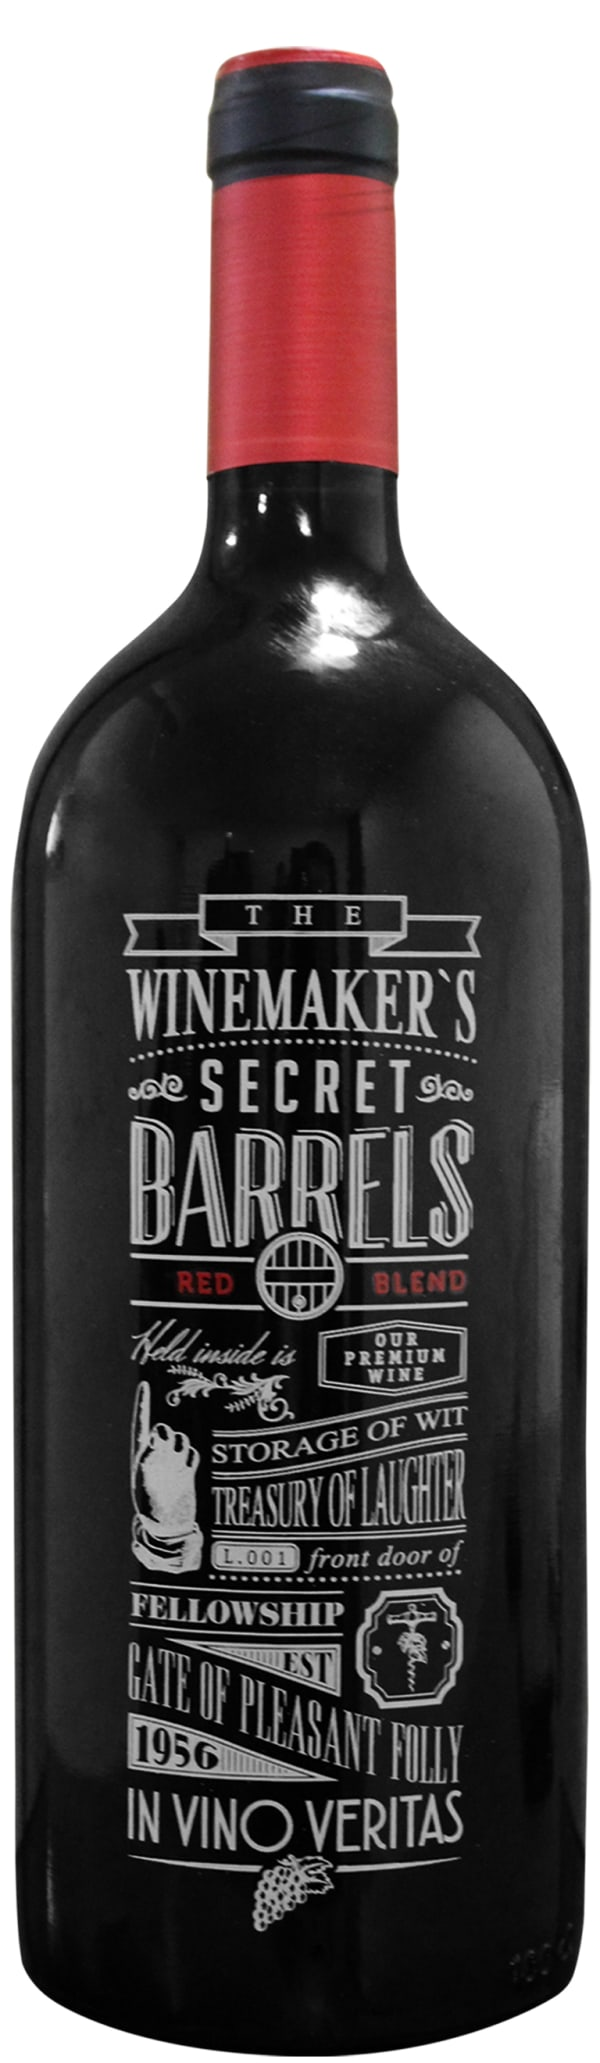 The Winemaker's Secret Barrels